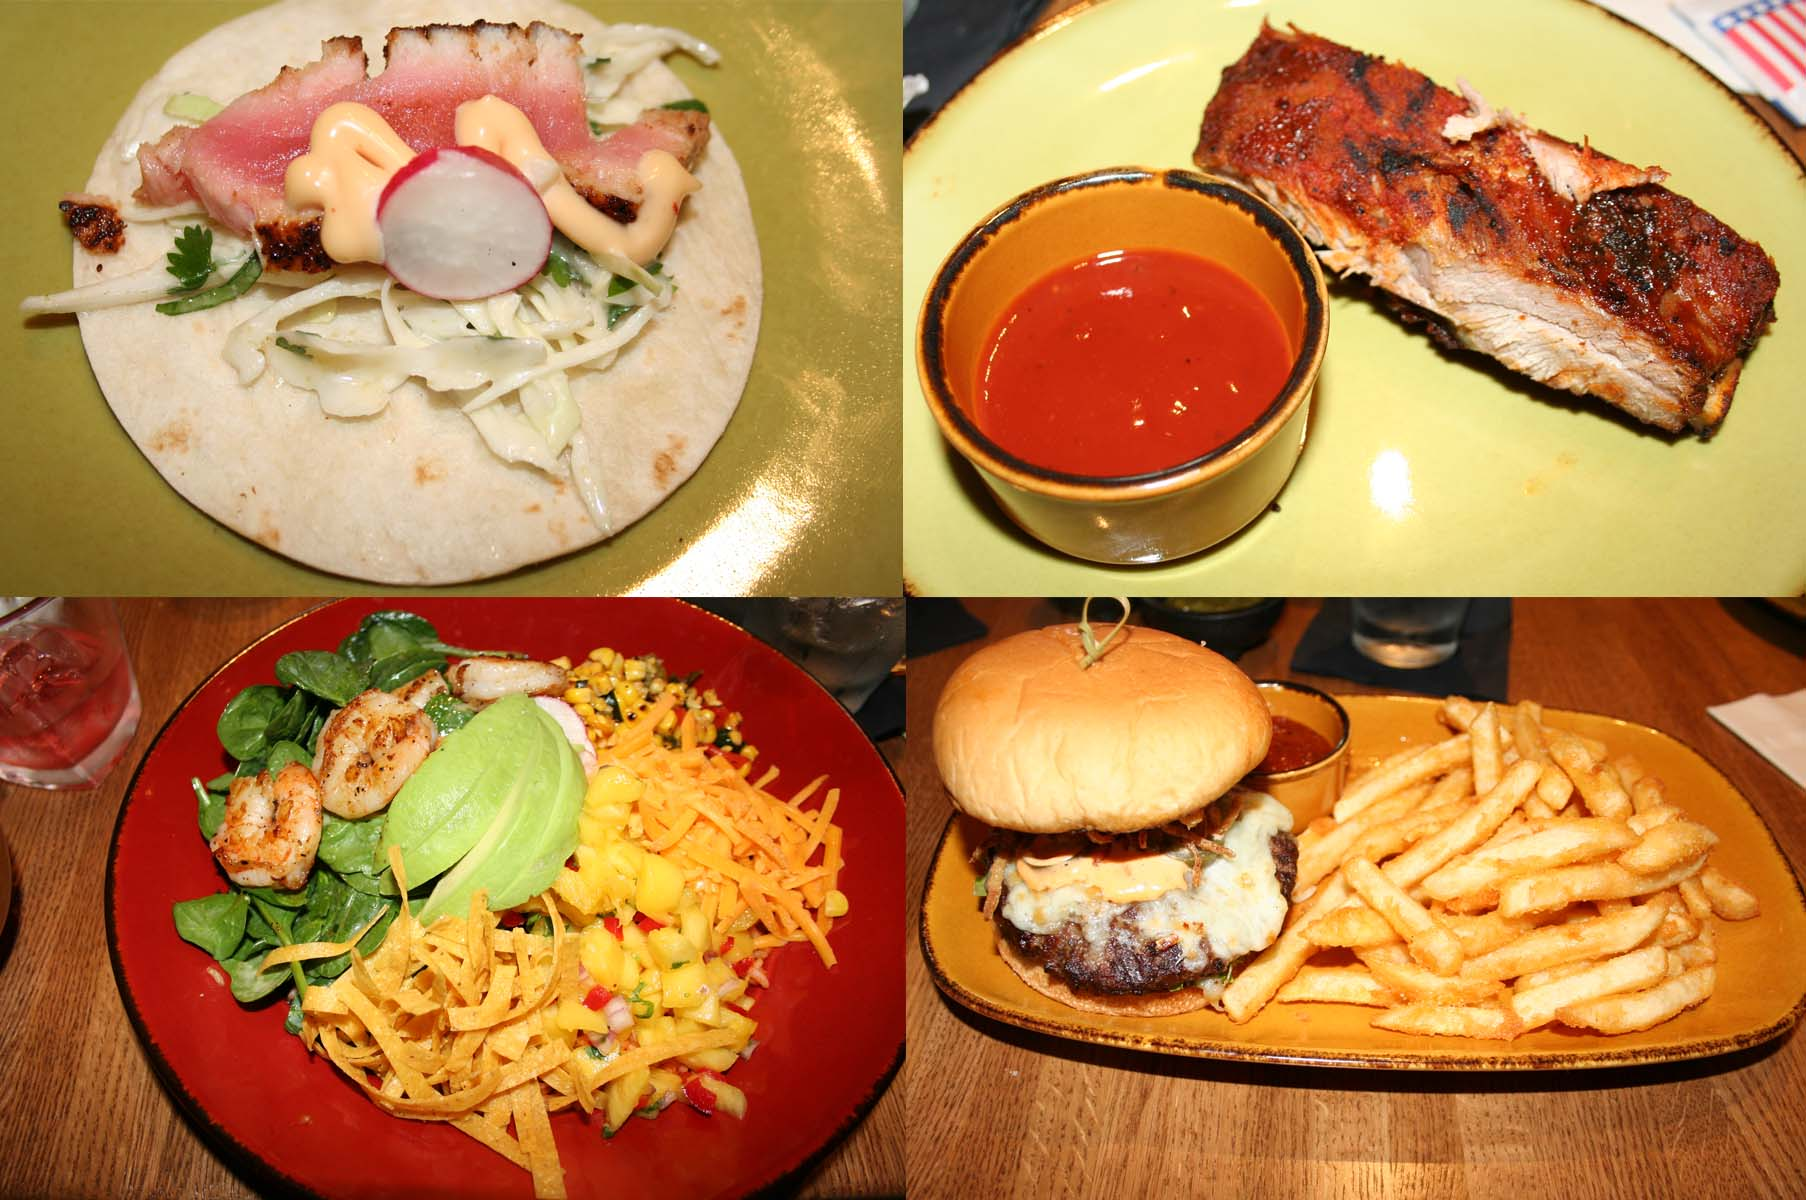 The new menu includes (clockwise from top left) Ahi tuna tacos with cabbage slaw, lime vinaigrette, shaved radish and chipotle mayo; slow-smoked St. Louis ribs with house made barbeque sauce; the tumbleweed burger with Texas Pete mayo, onion straws, pickled jalapenos, cheddar jack cheese, lettuce, tomato, and week killer sauce; and shrimp fiesta salad with red rice, black beans, baby spinach, mango salsa, roasted corn, avocado, sliced radish, crispy tortilla strips, cheddar cheese, cilantro lime creme, grilled shrimp and margarita salsa. (Photo: Mark Heckathorn/DC on Heels)